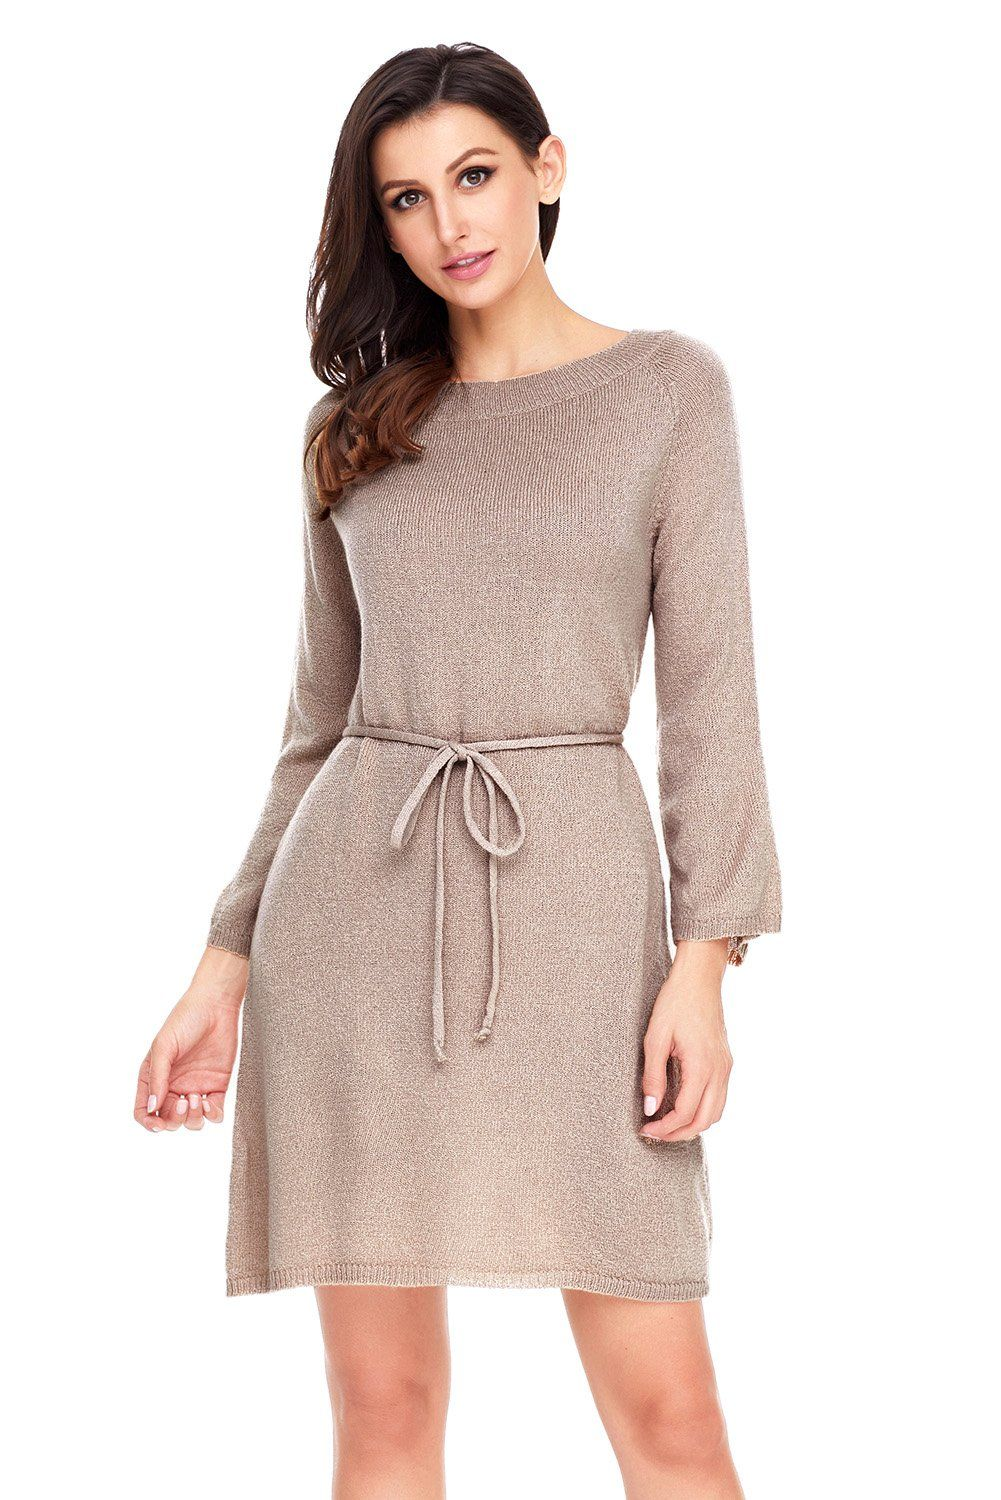 1b8df83ec804 Robe Pull Femme Kaki Tricot Manches 3 4 Hiver Pas Cher www.modebuy.com   Modebuy  Modebuy  Abricot  style  occasion  styles  mode